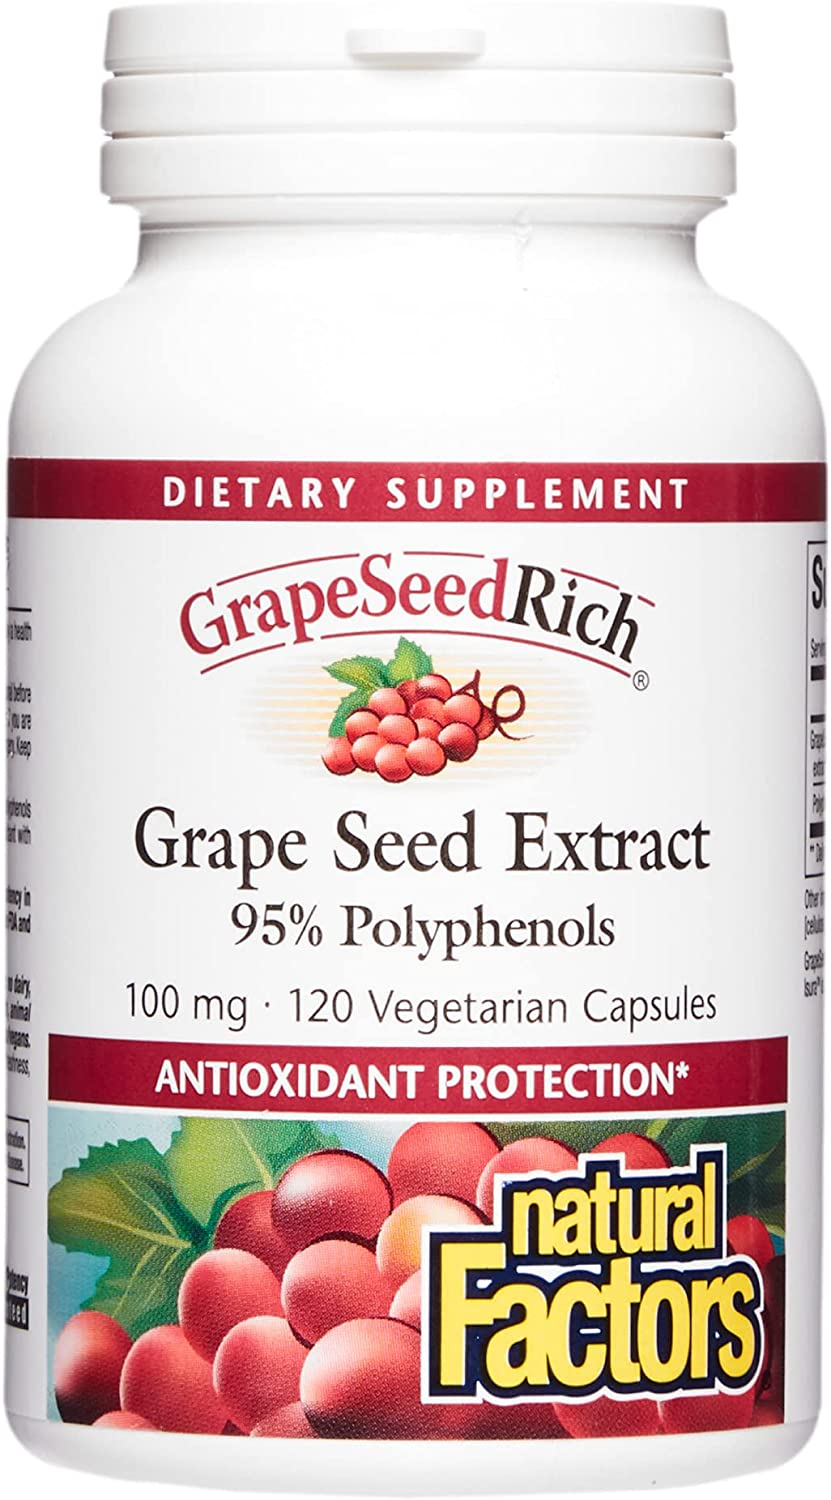 Natural Factors GrapeSeedRich San Francisco Free Shipping New Mall Grape S Extract Seed Antioxidant